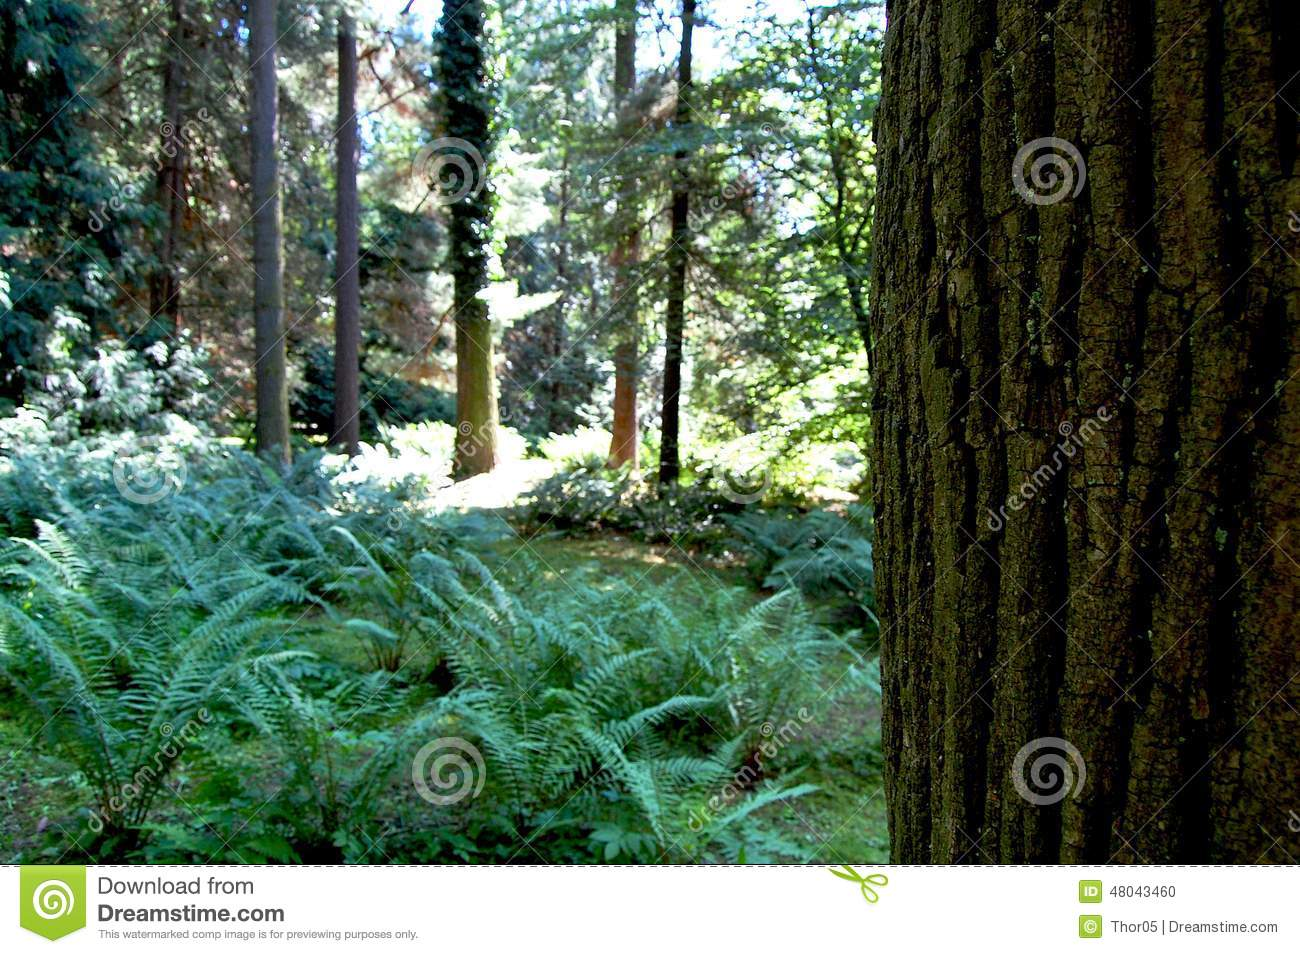 Tree trunk on a background of forest clearing